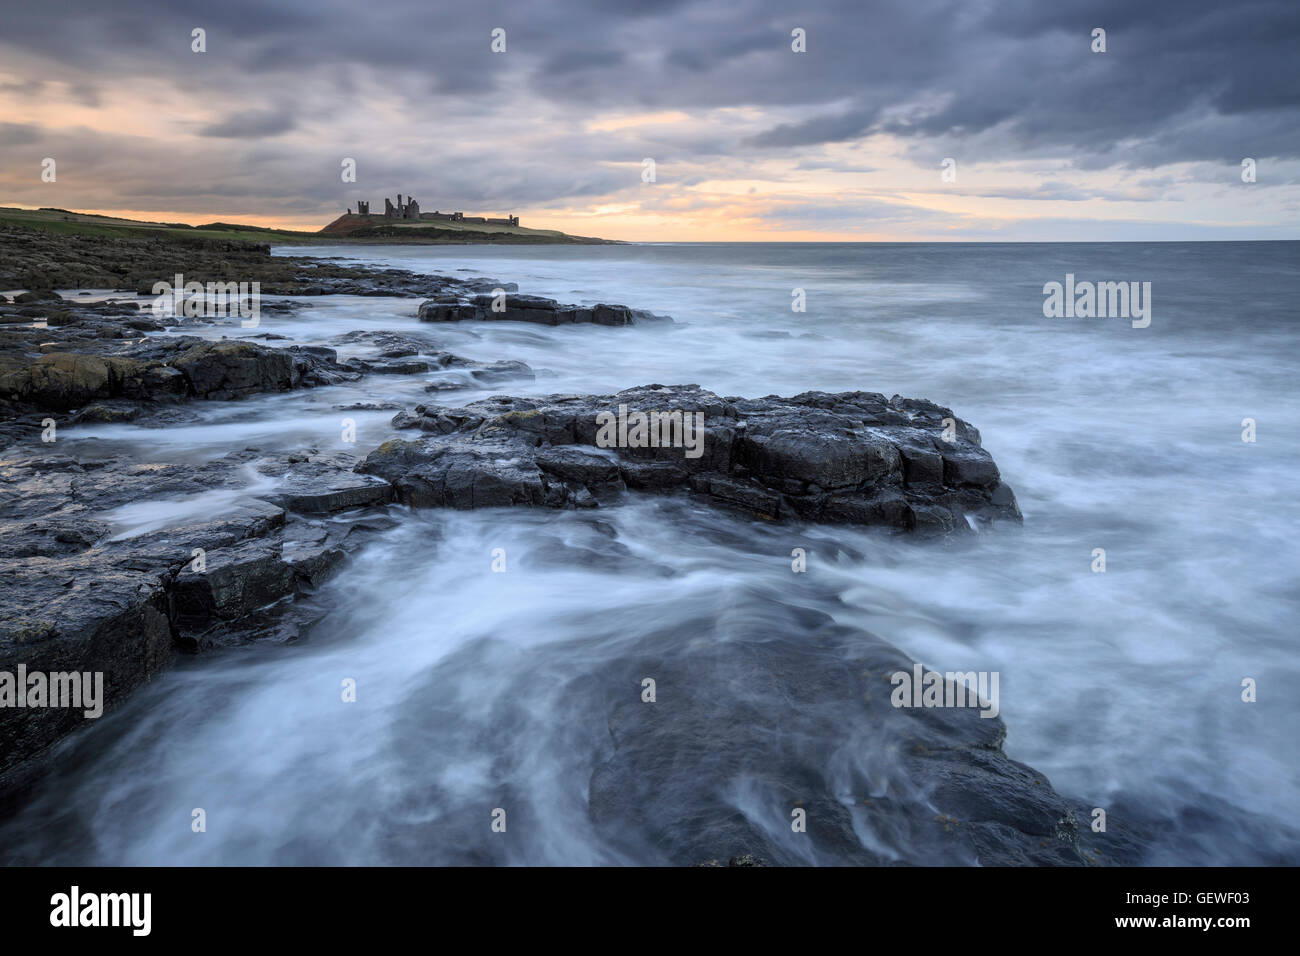 Dunstanburgh Castle viewed from the south with a stormy sea in the foreground. - Stock Image